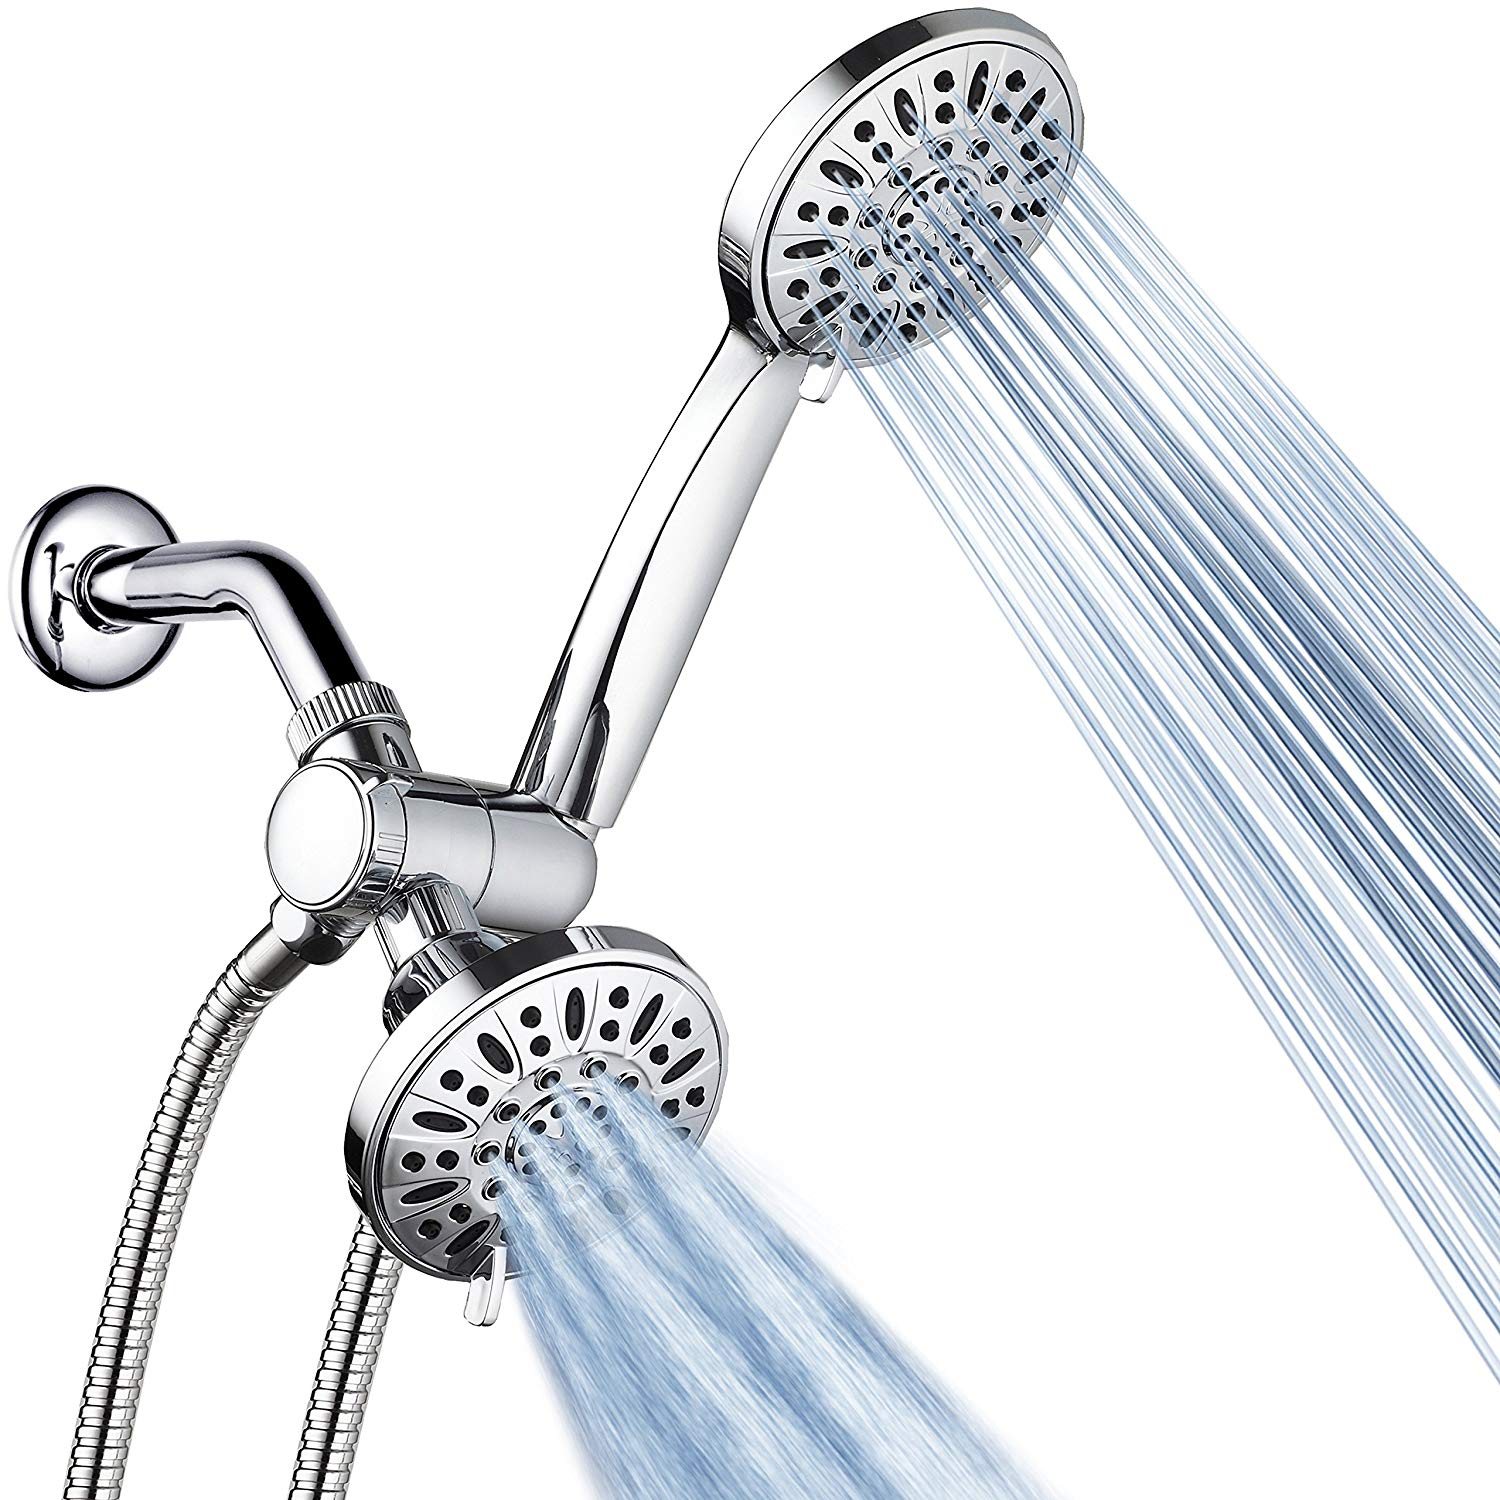 AquaDance Showerhead